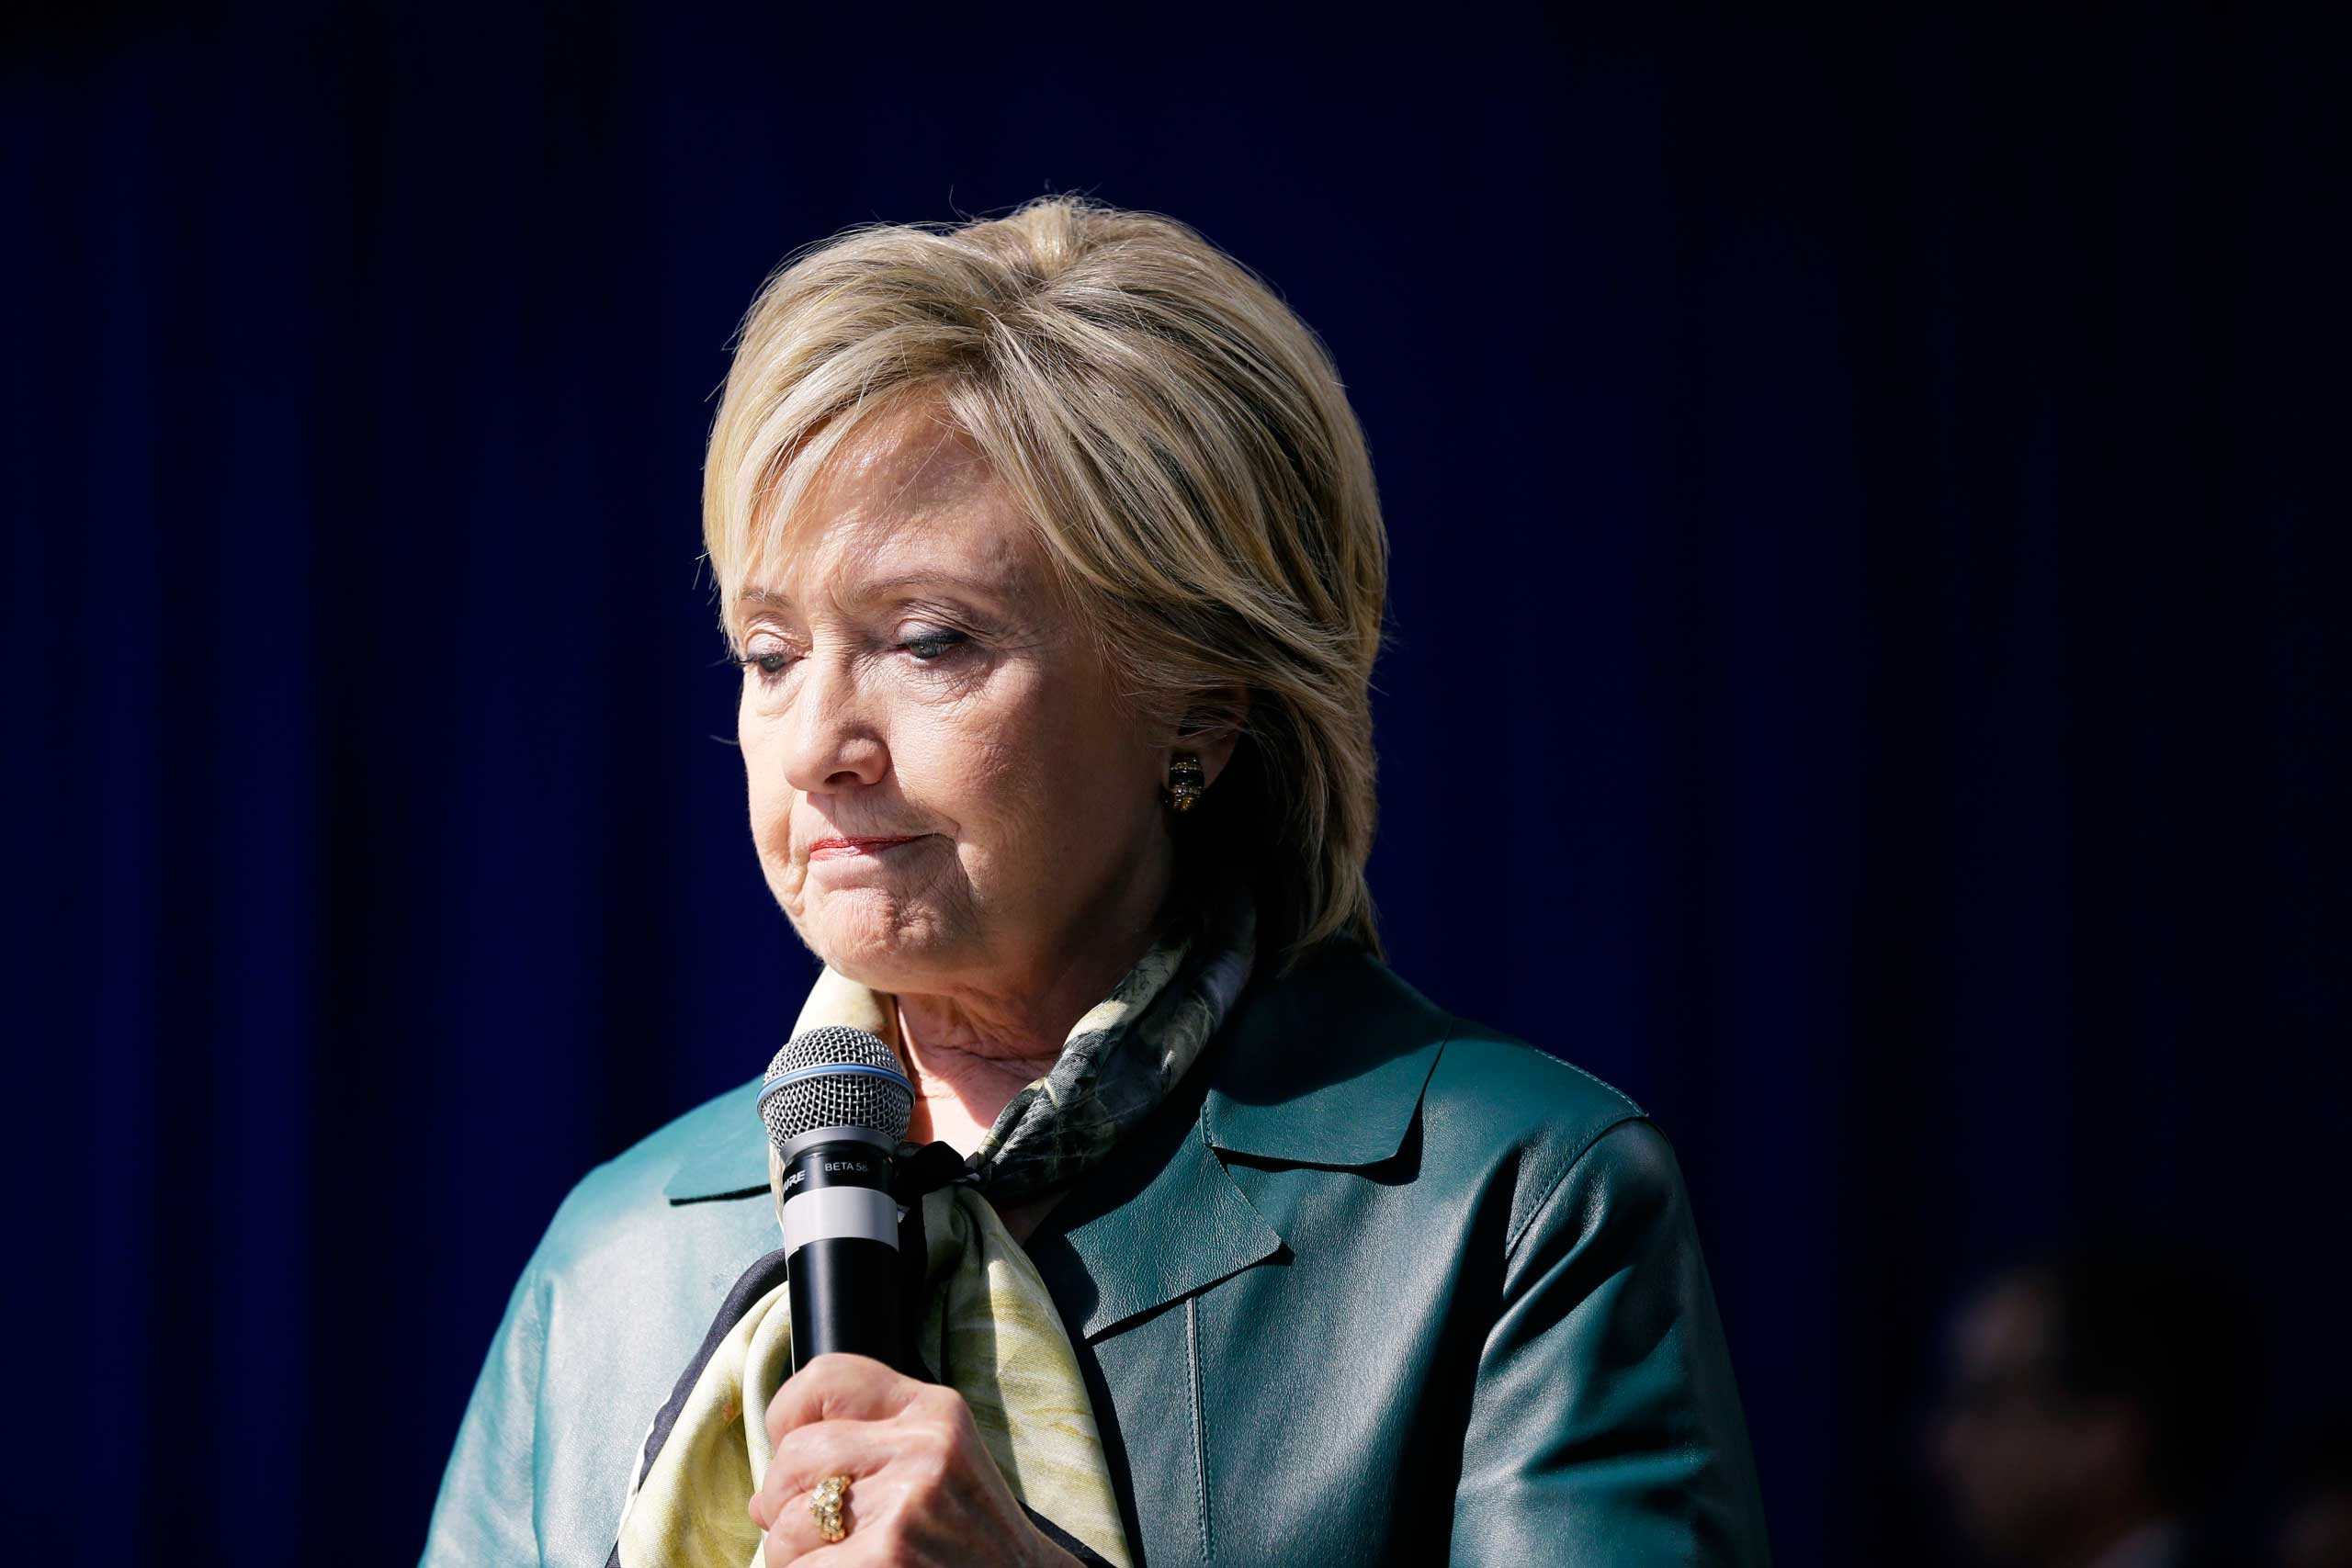 Hillary Clinton speaks during a community forum in Davenport, Iowa, on Oct. 6, 2015.